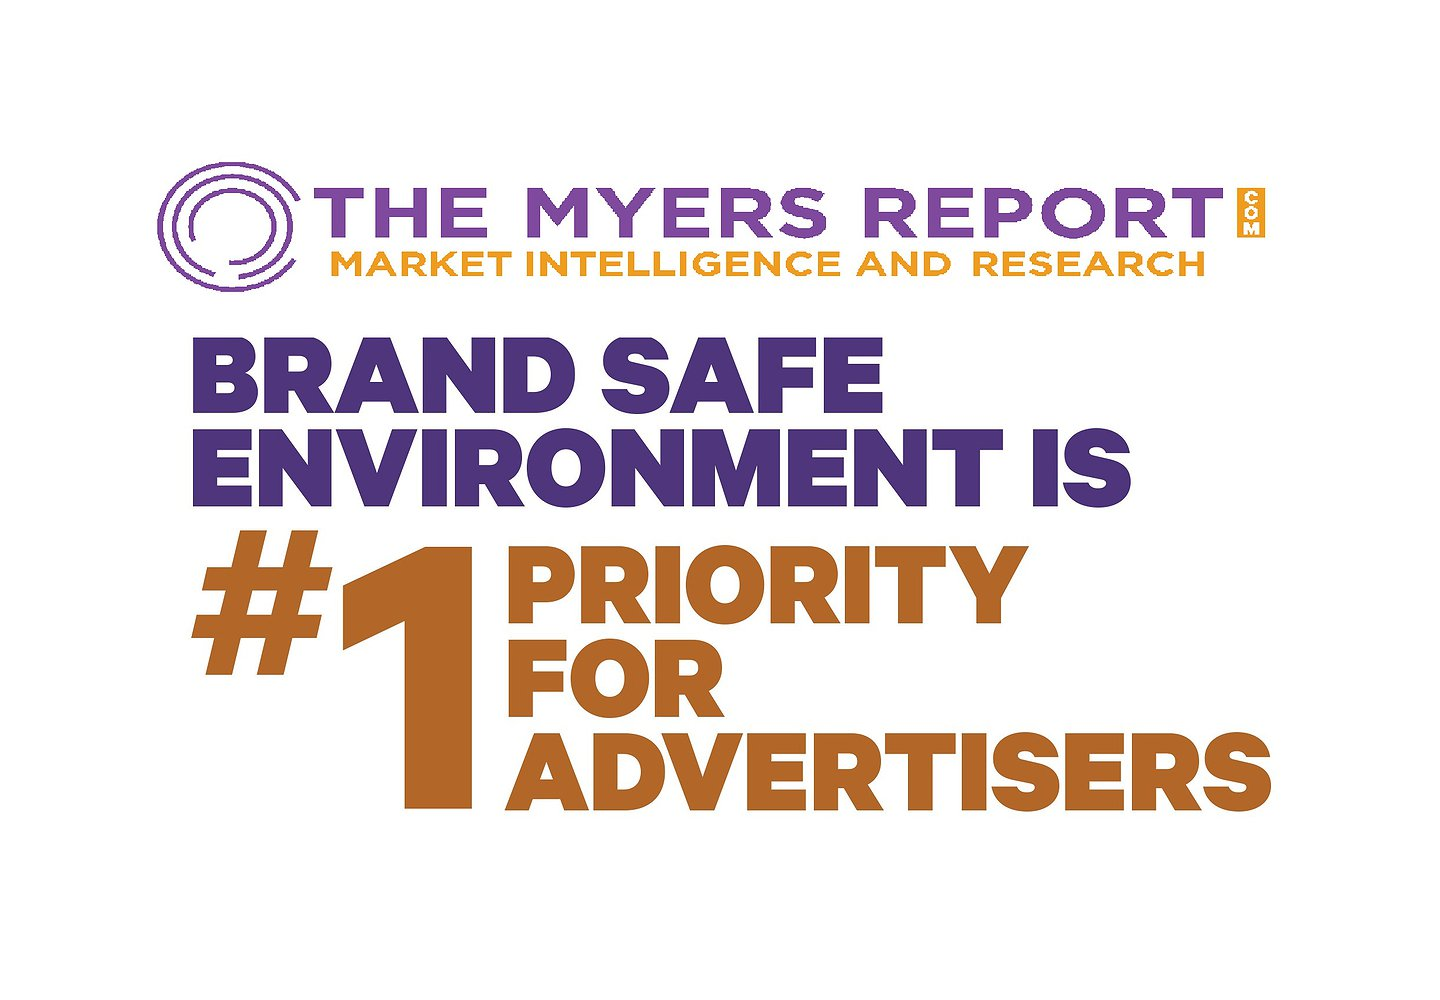 Brand Safe Environment is #1 Priority for Advertisers